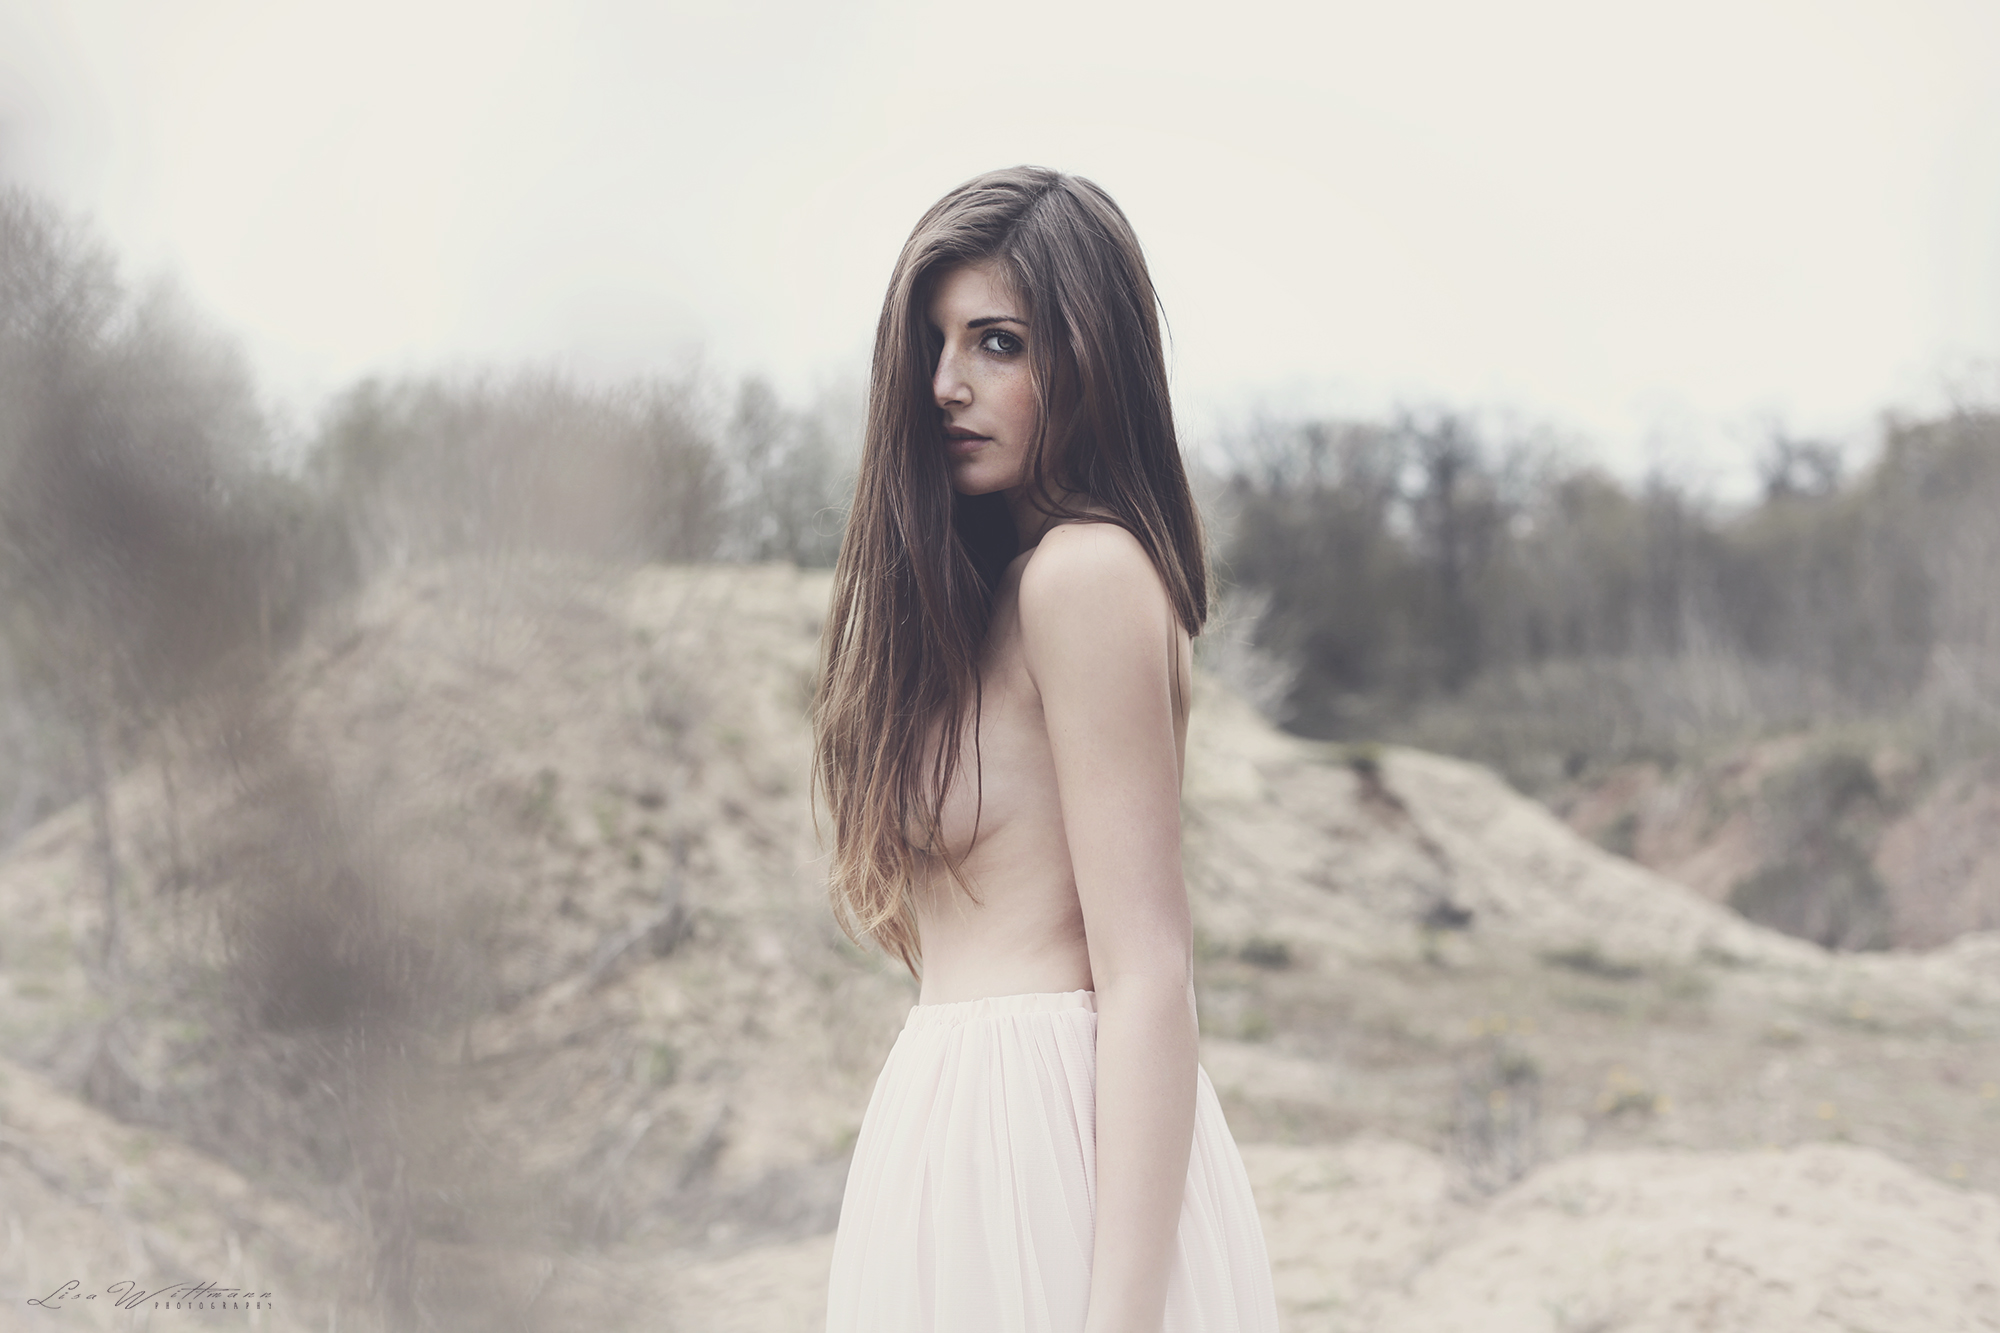 lisa_wittmann_photography_woman_nude_pastel_vintage_long_hair_tulle_sand